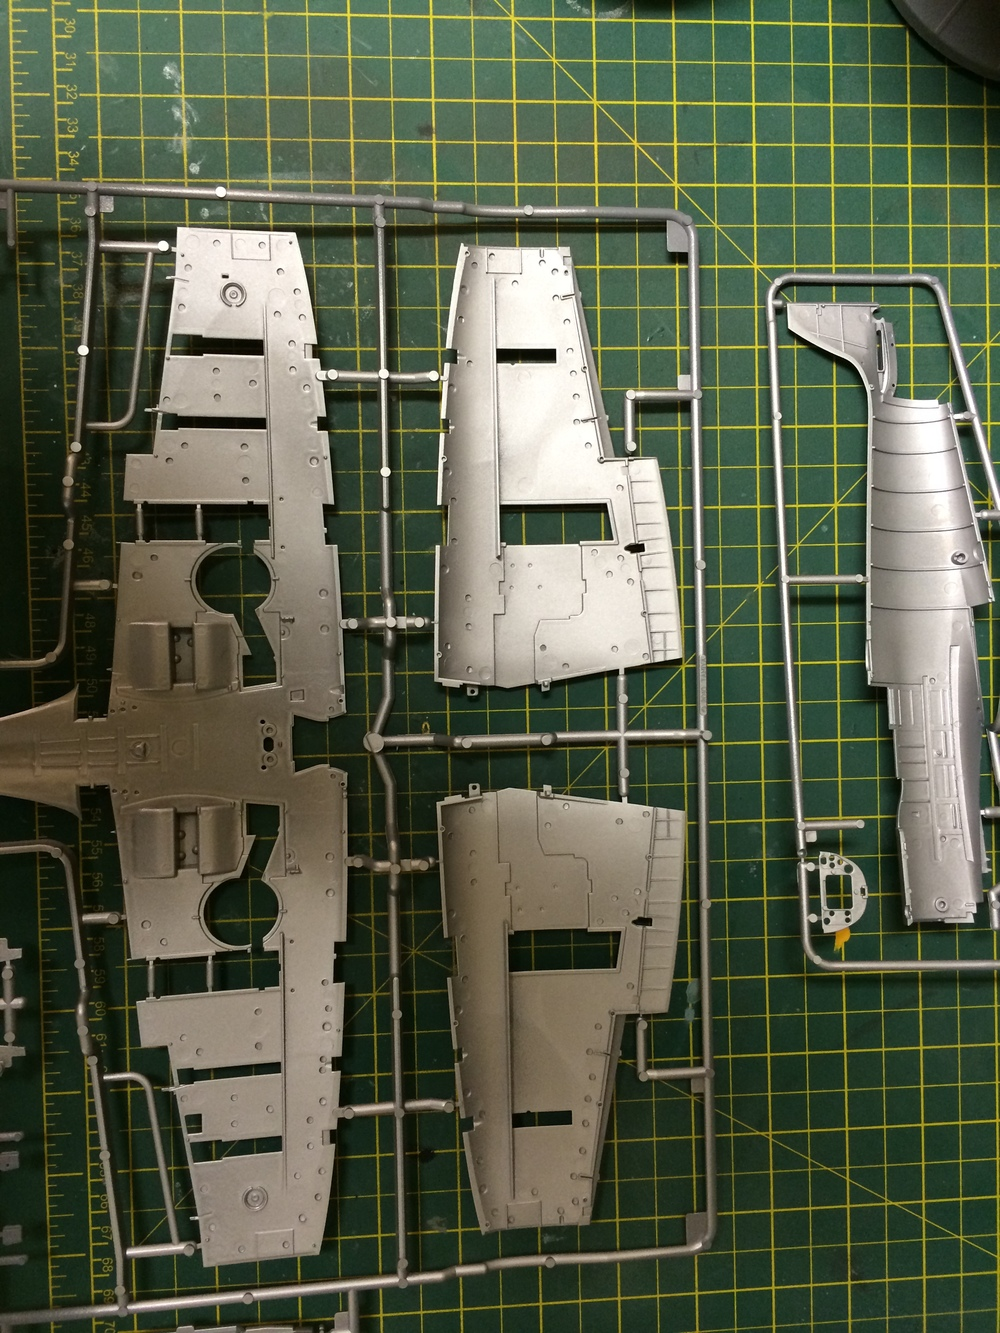 I undercoated a lot of the parts with Tamiya bear metal straight from the can.